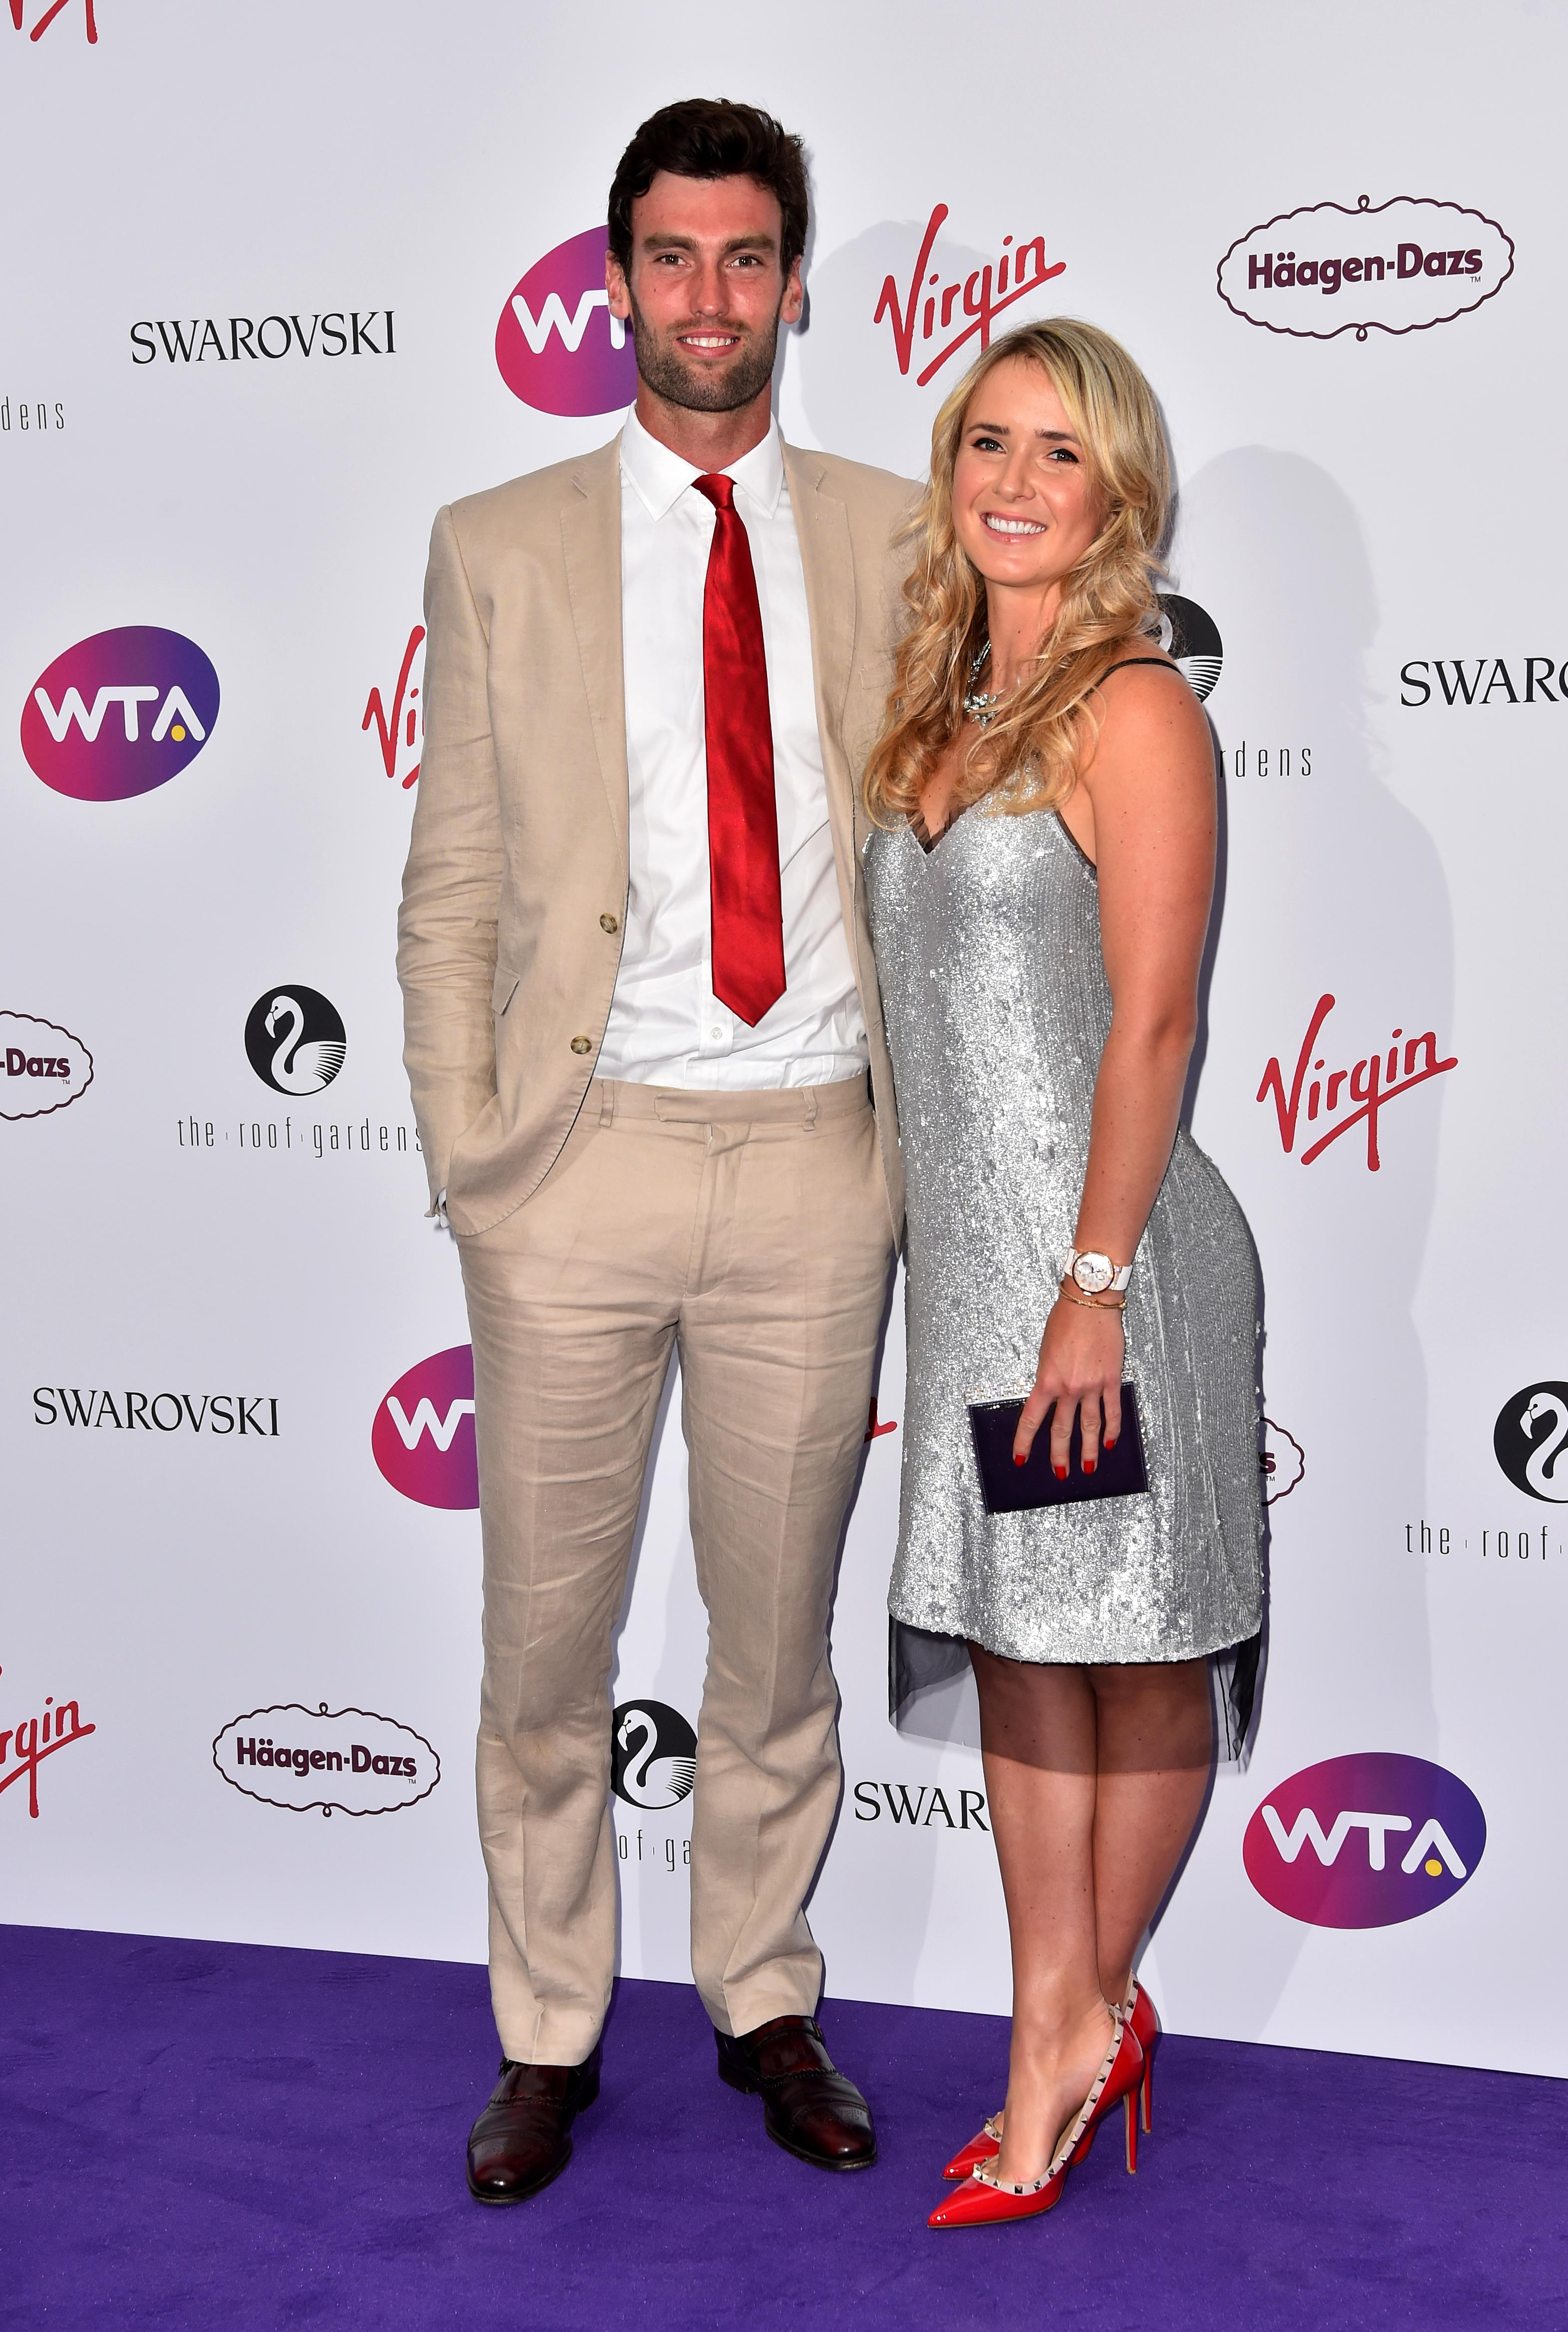 The tennis star and Topley have been together since 2016